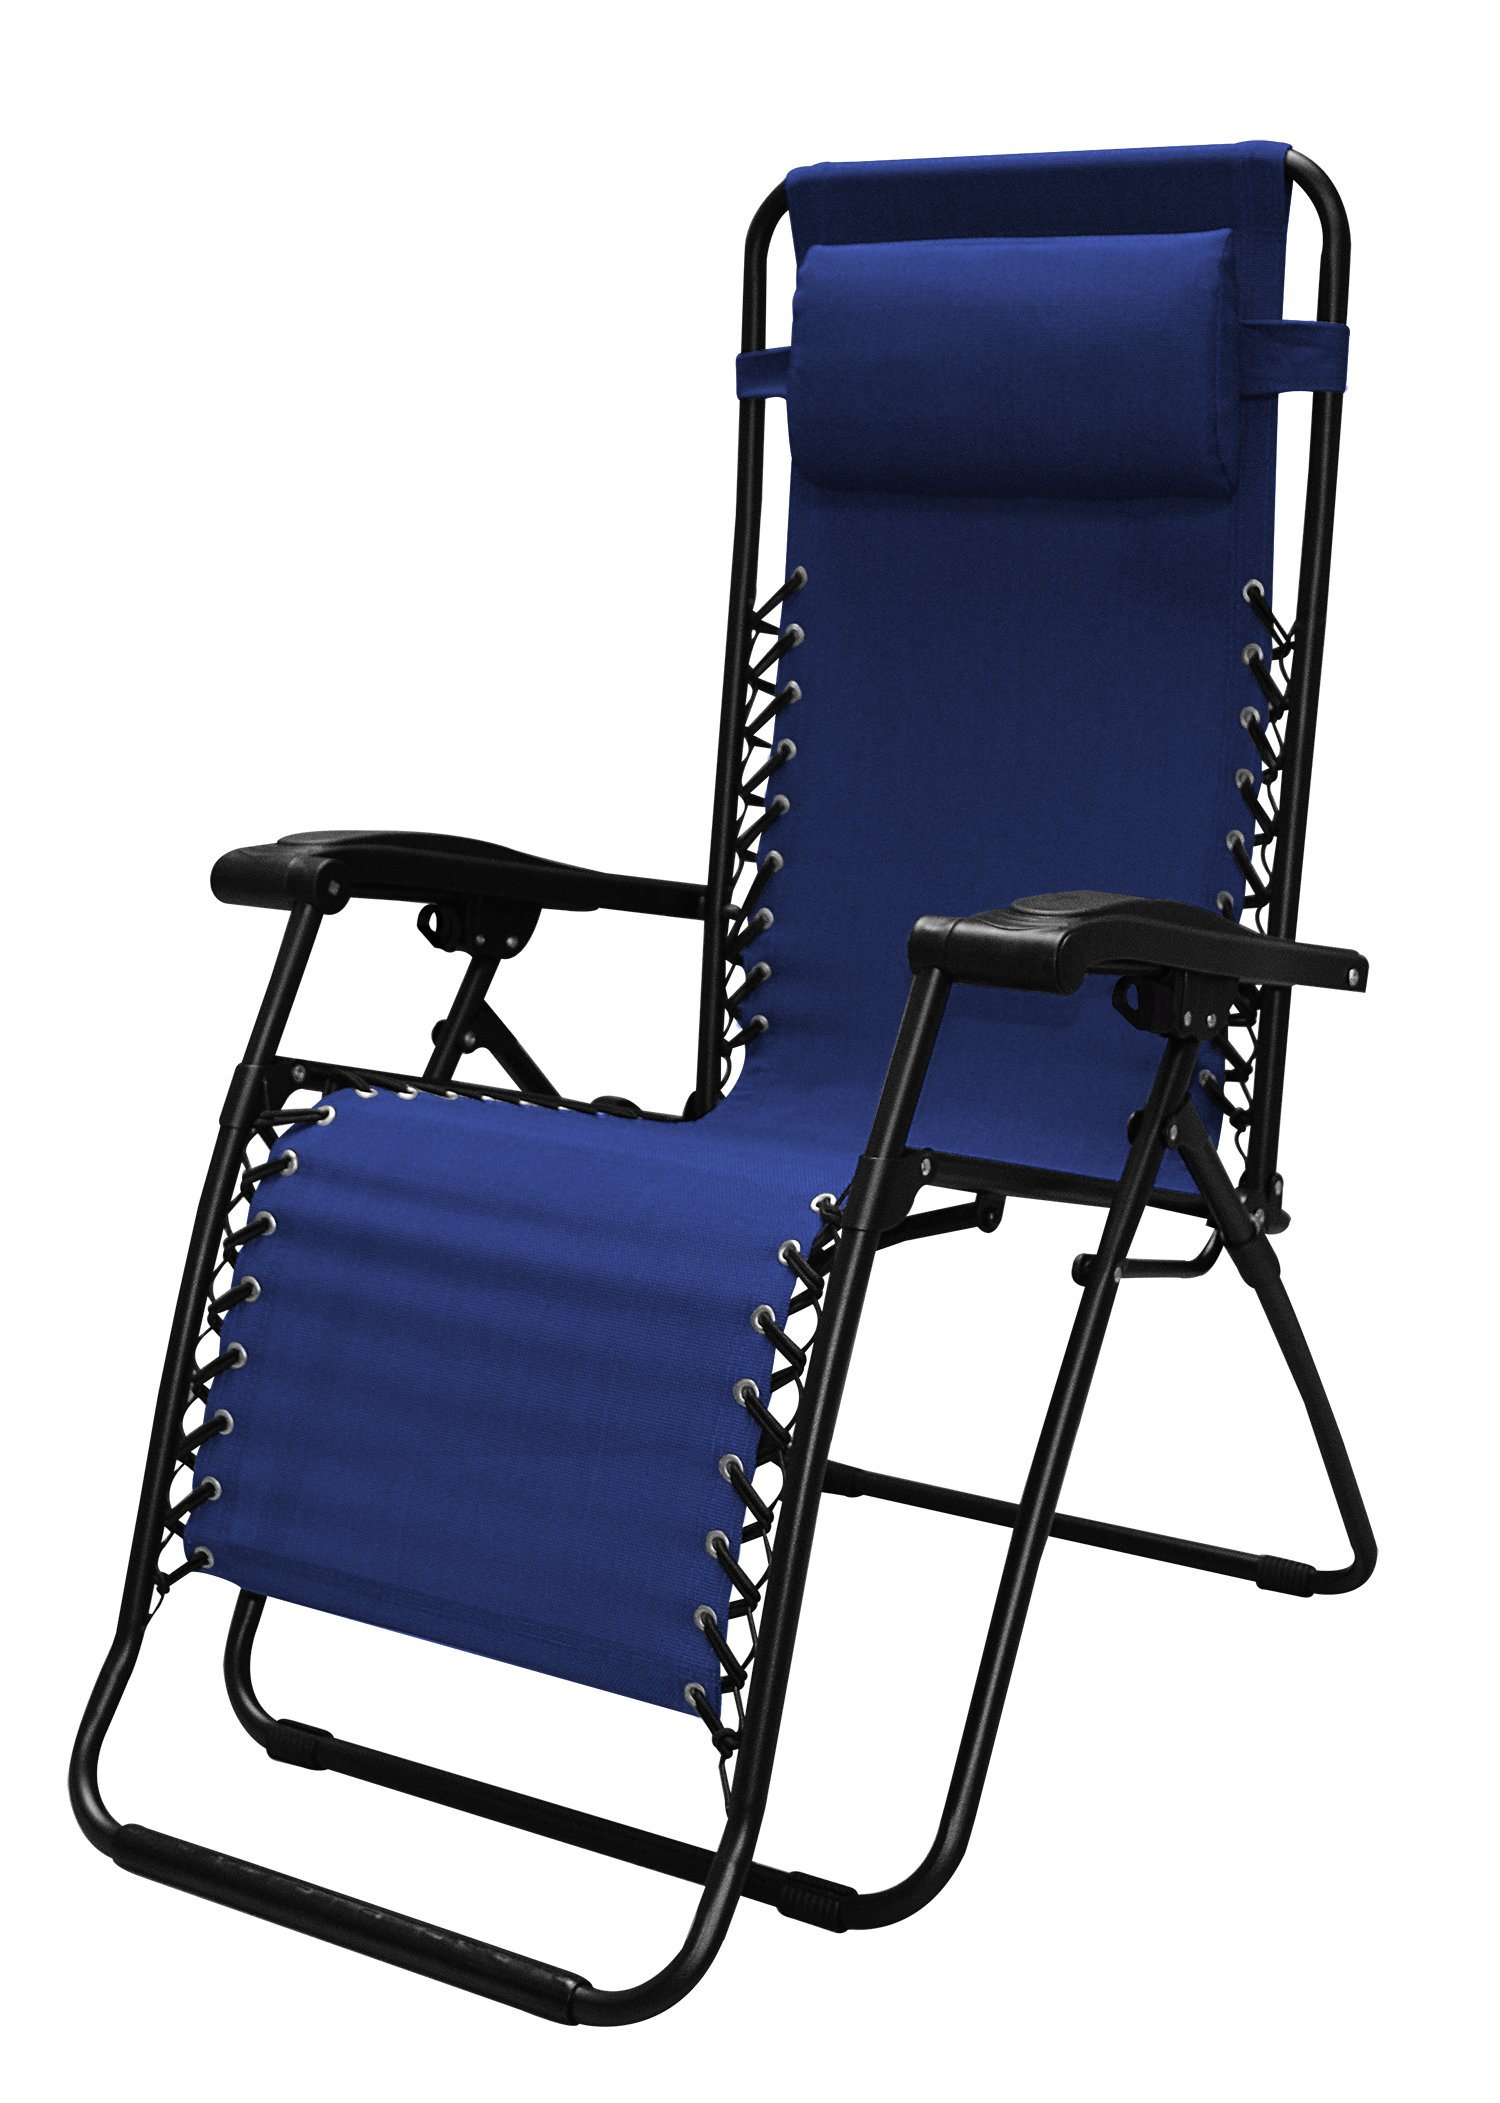 Caravan Sports Infinity Zero Gravity Chair, Blue, 1-Pack by Caravan Sports